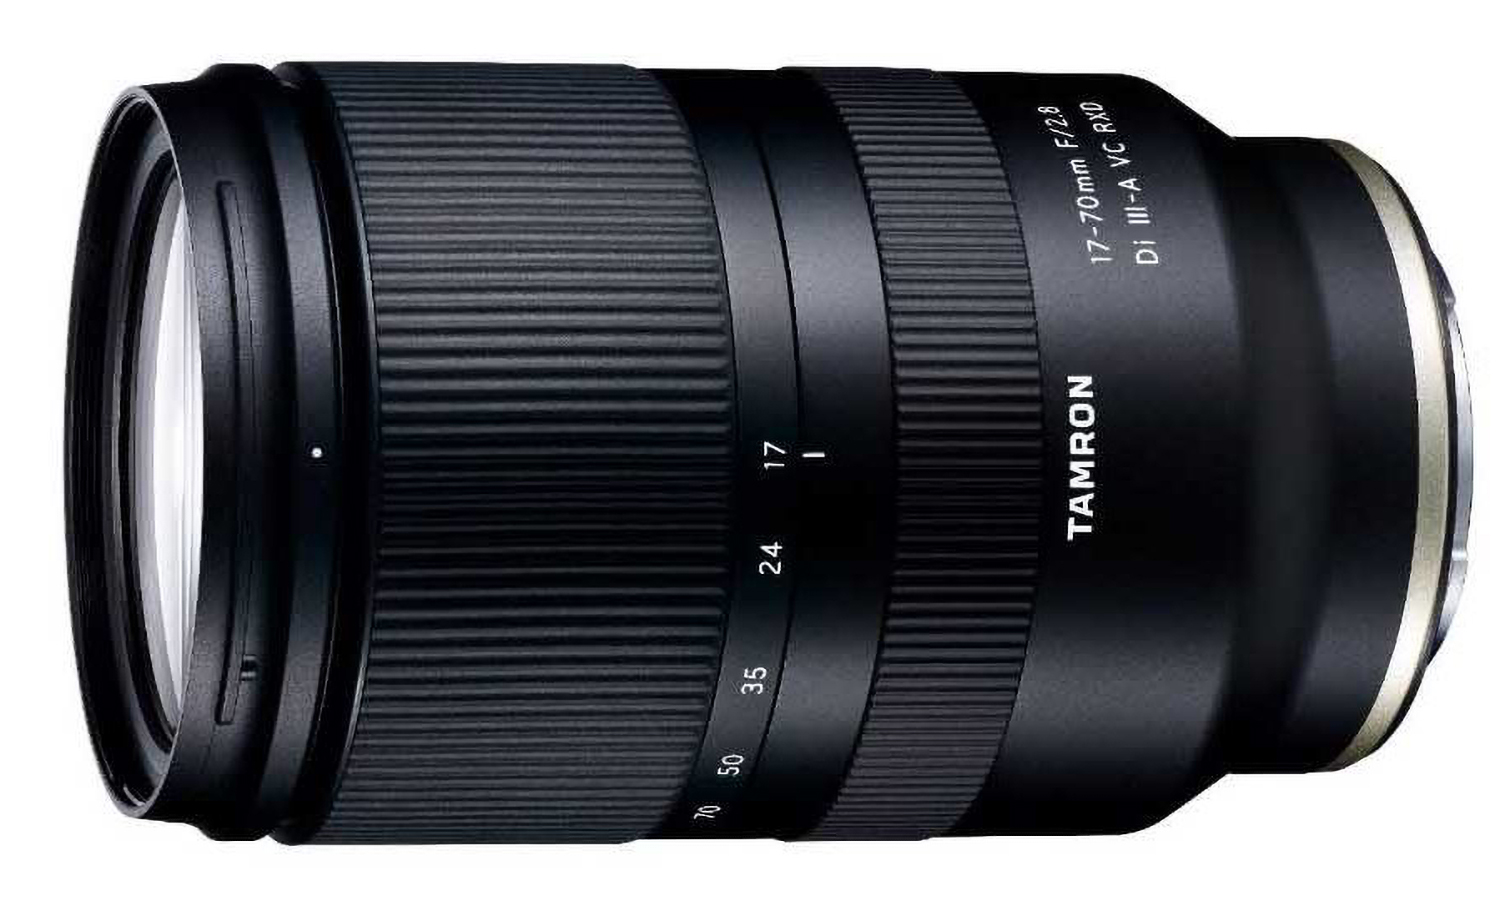 Photo of Tamron 17-70mm f/2.8 lens 2